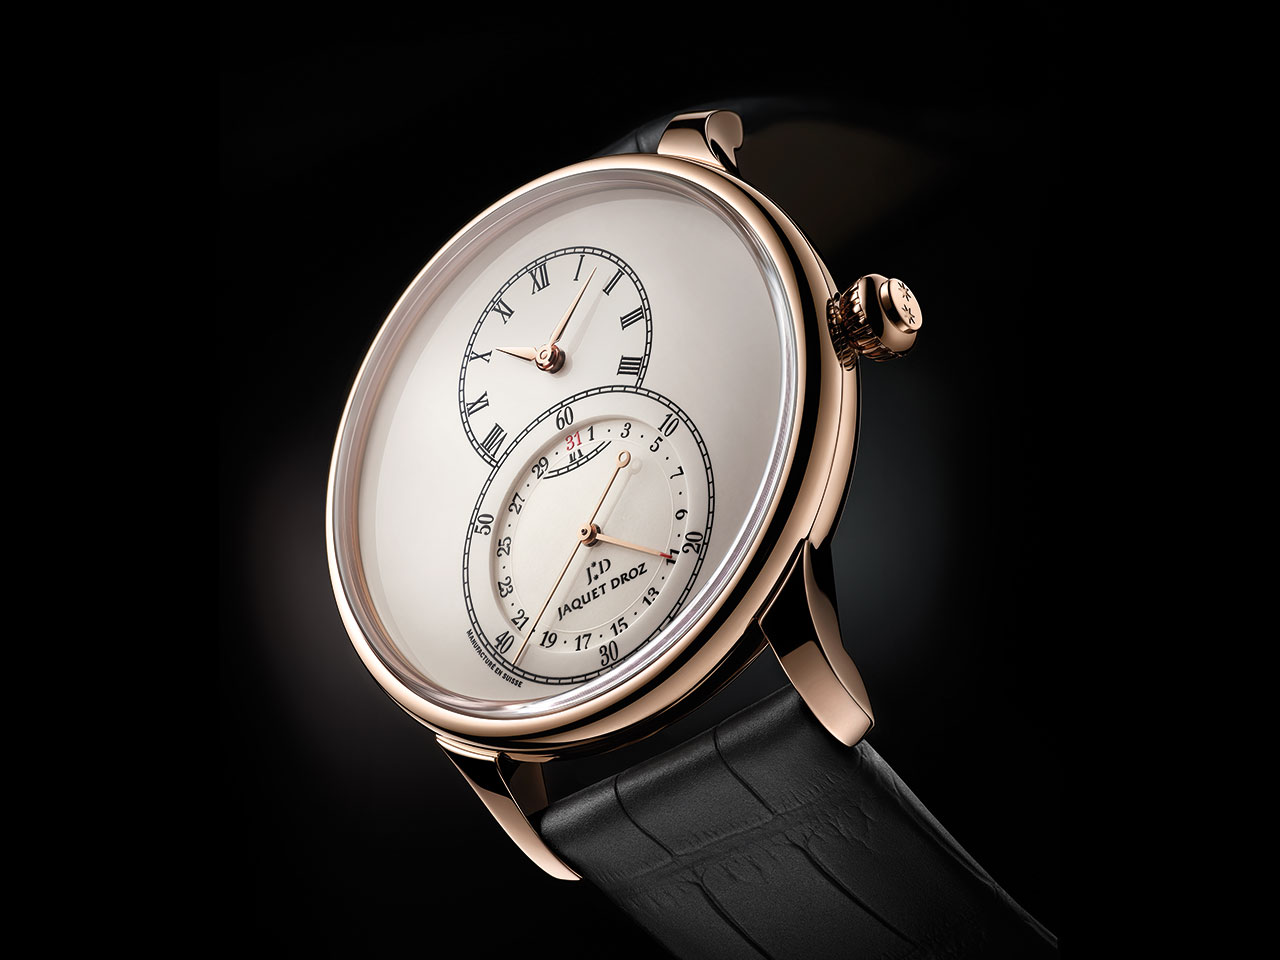 Jaquet Droz Grande Seconde Quantième Ivory Enamel Automatic Watch